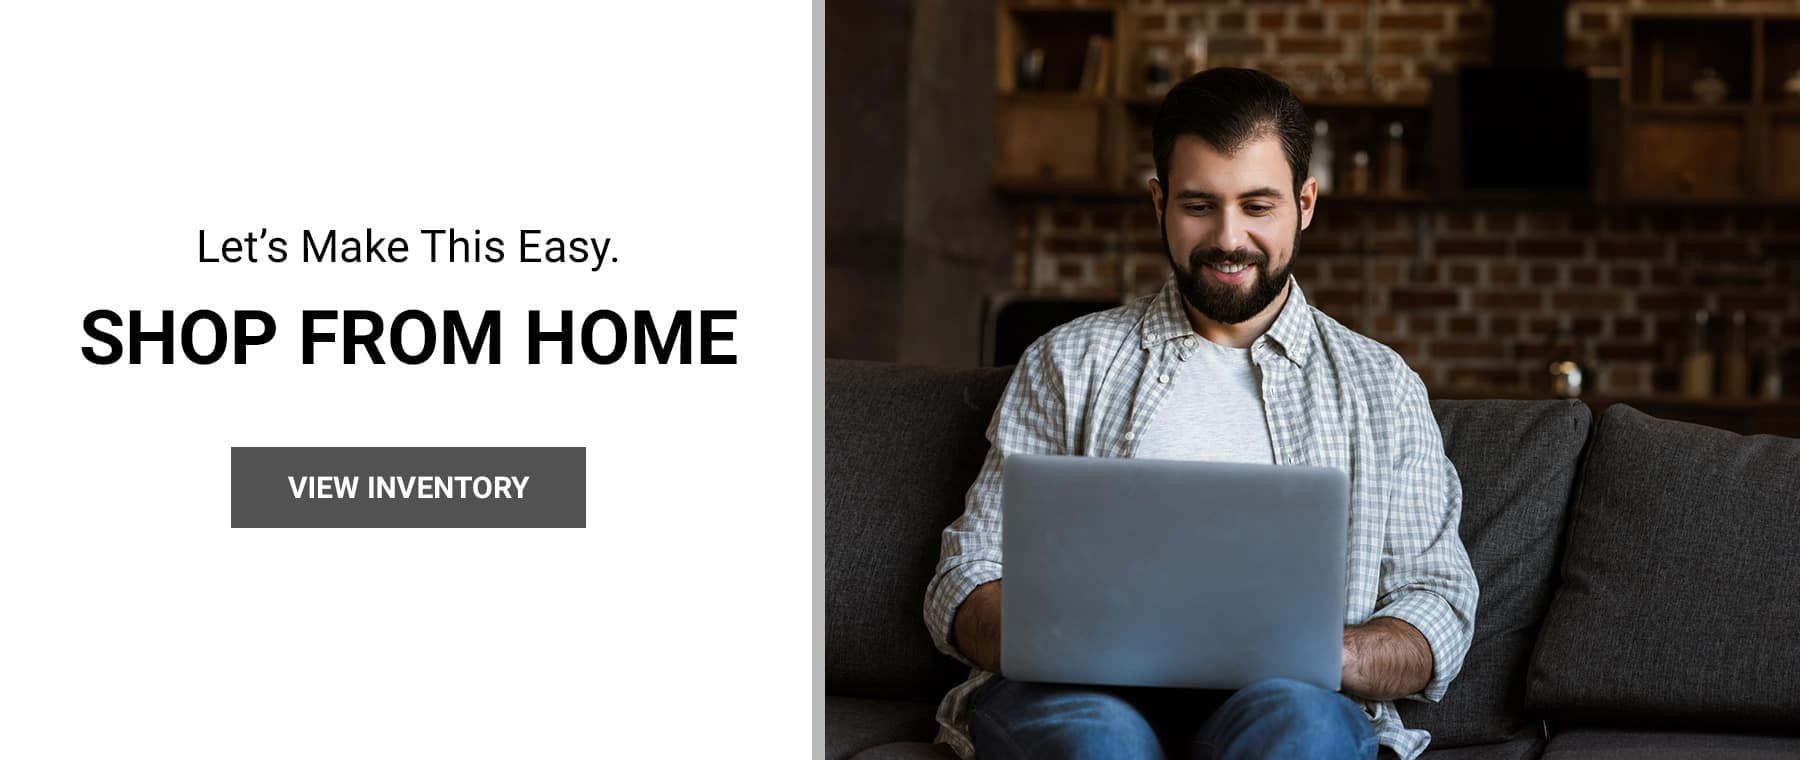 Let's make this easy - Shop from home!